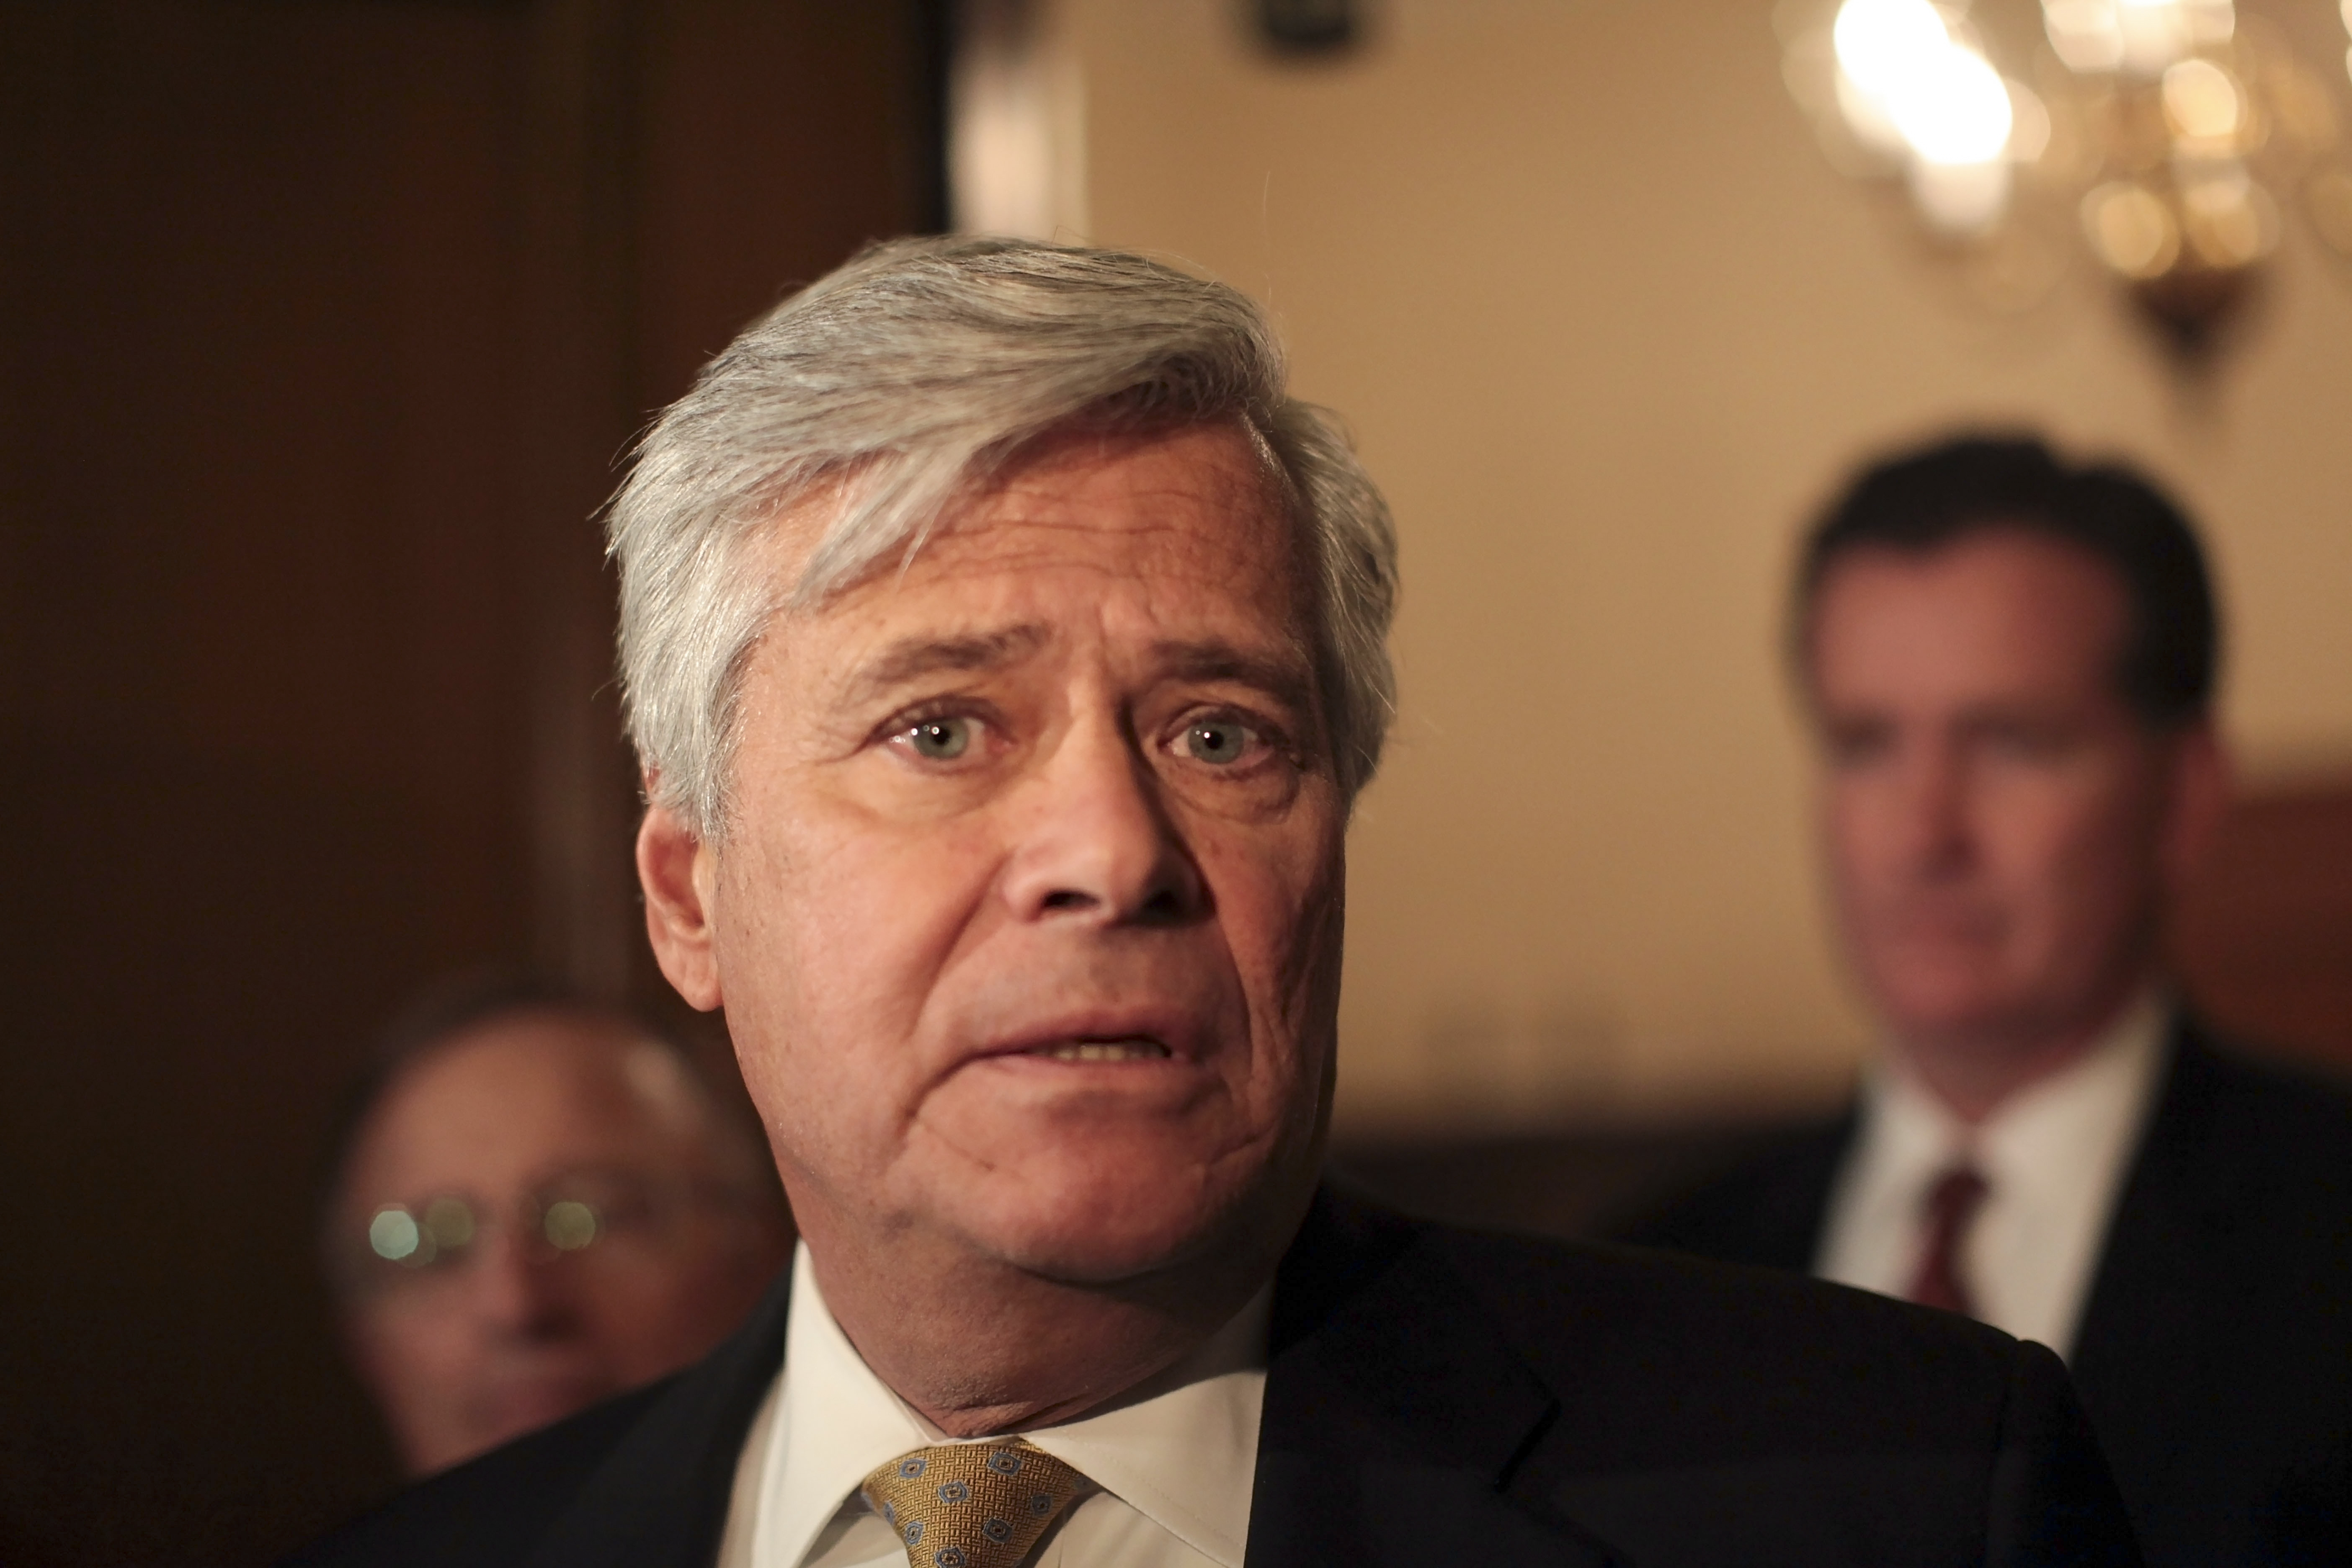 Long Island Republican Dean Skelos speaks to reporters in Albany on March 30. (New York Times file photo)